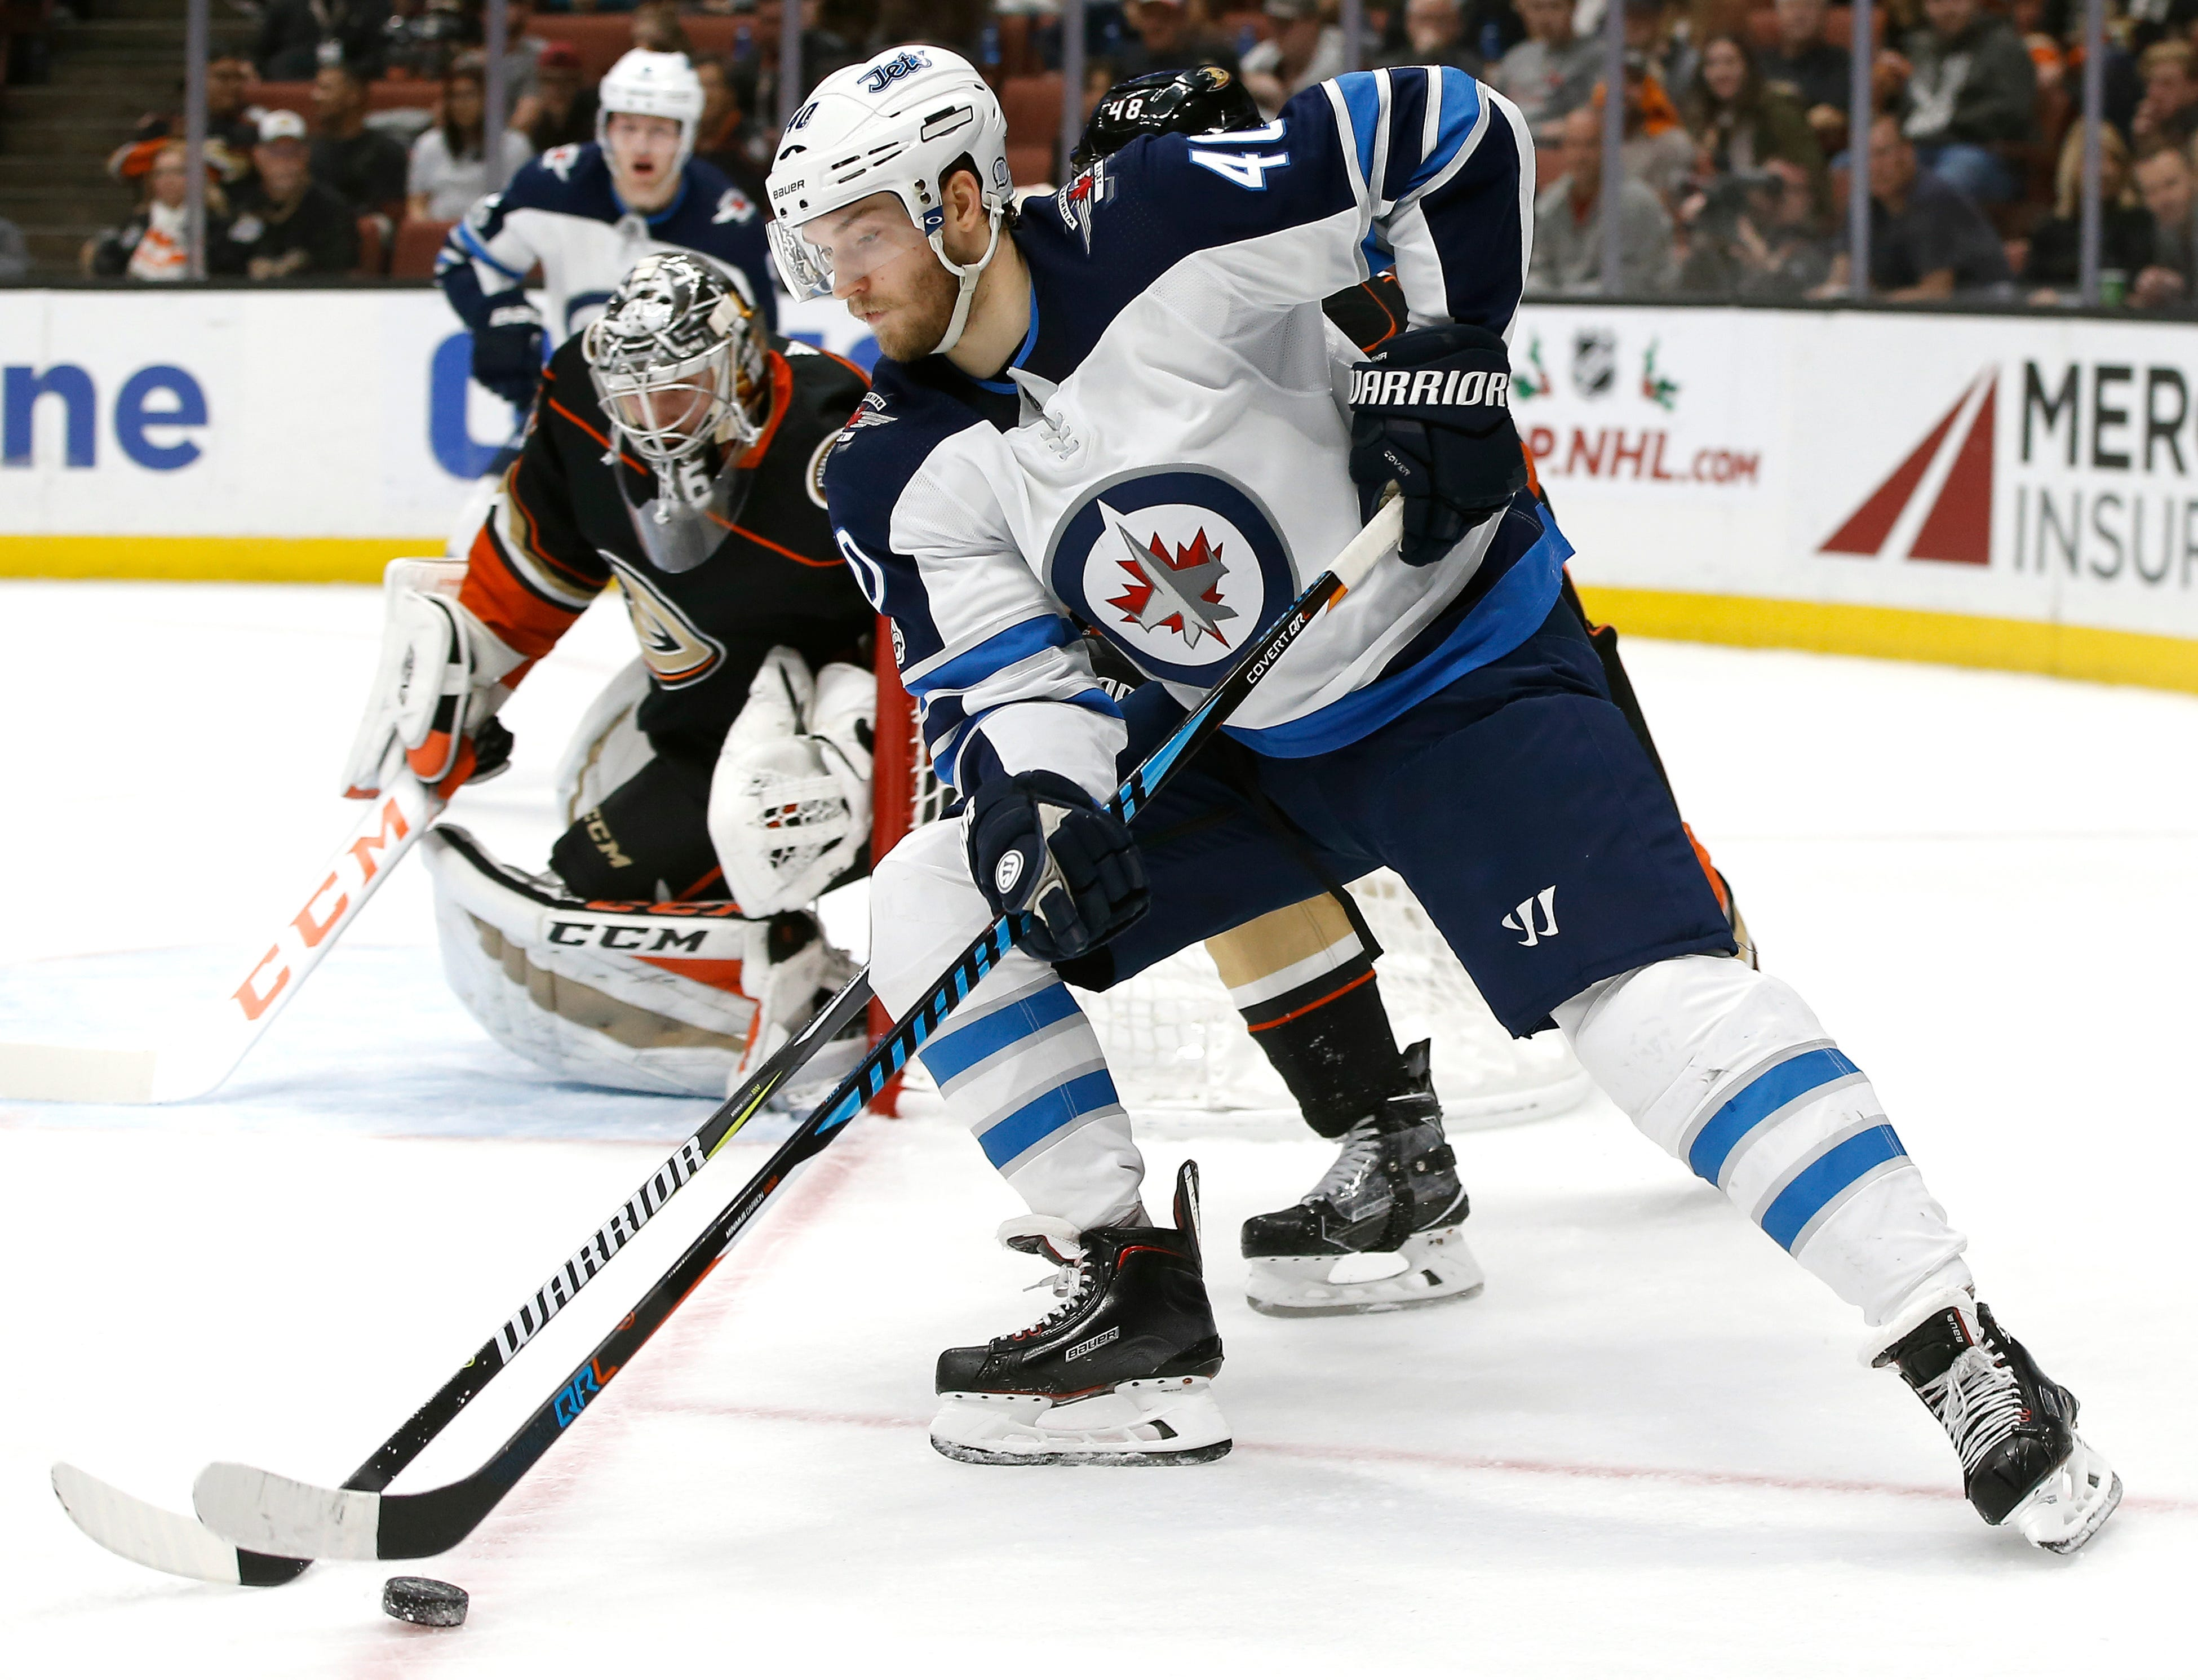 Streaking Jets roll past Ducks 4-1 on Ehlers' 2 goals